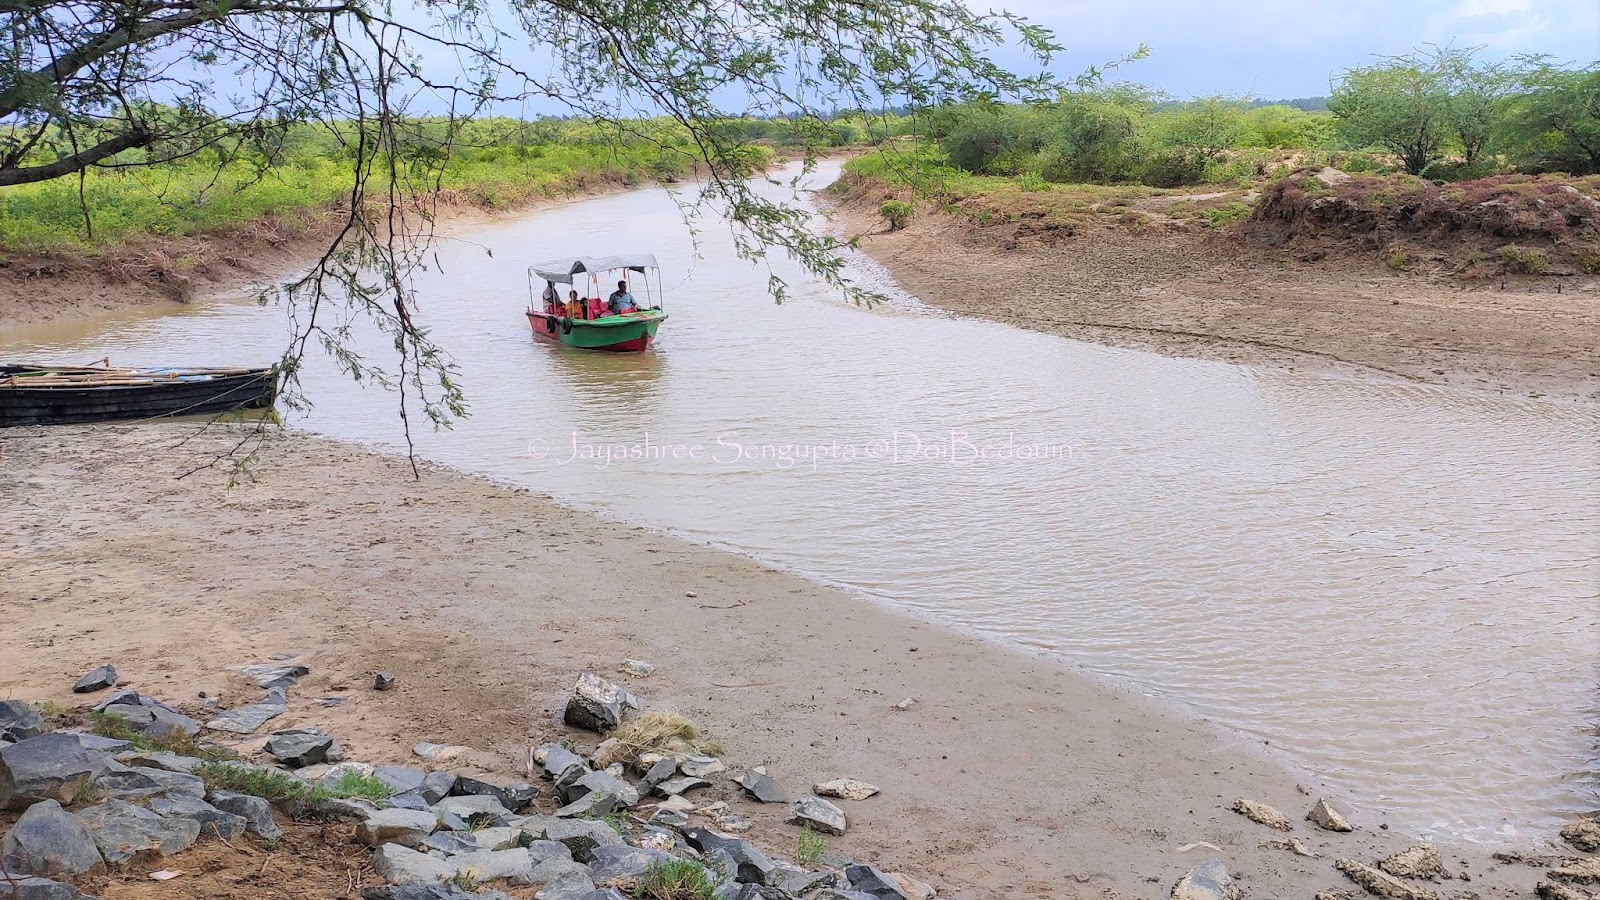 The small dock wherefrom the boat ride is initiated, bichitrapur, doibedouin